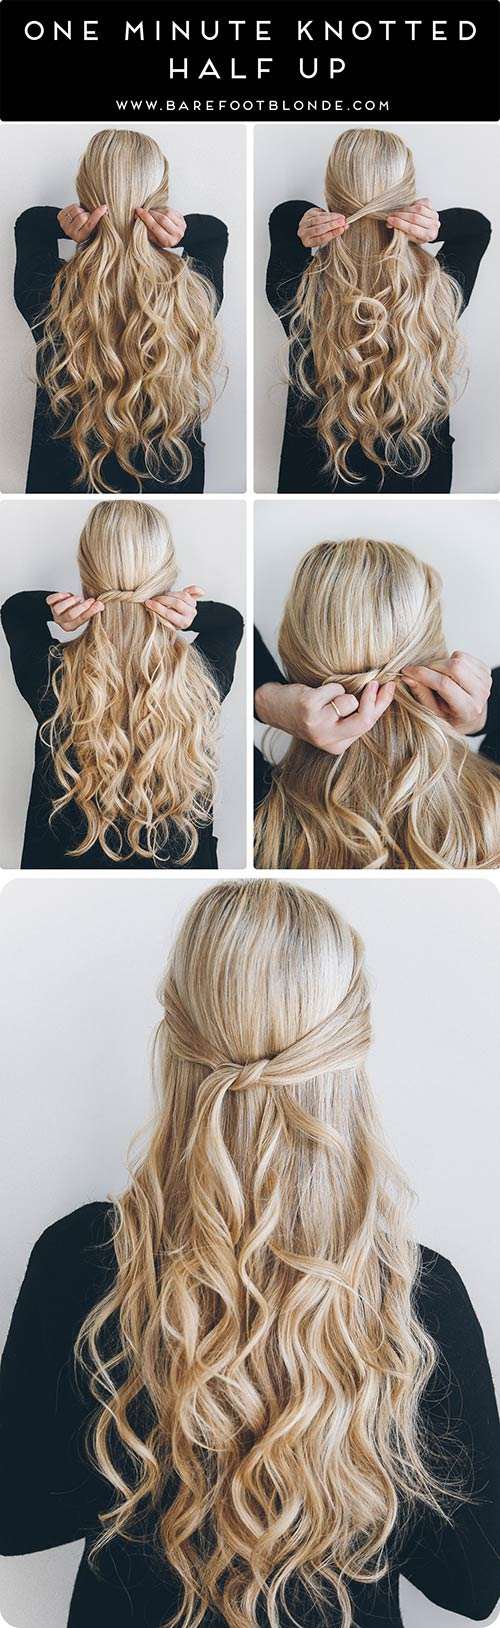 One-Minute-Knotted-Half-Up Awesome Hairstyles For Girls With Long Hair